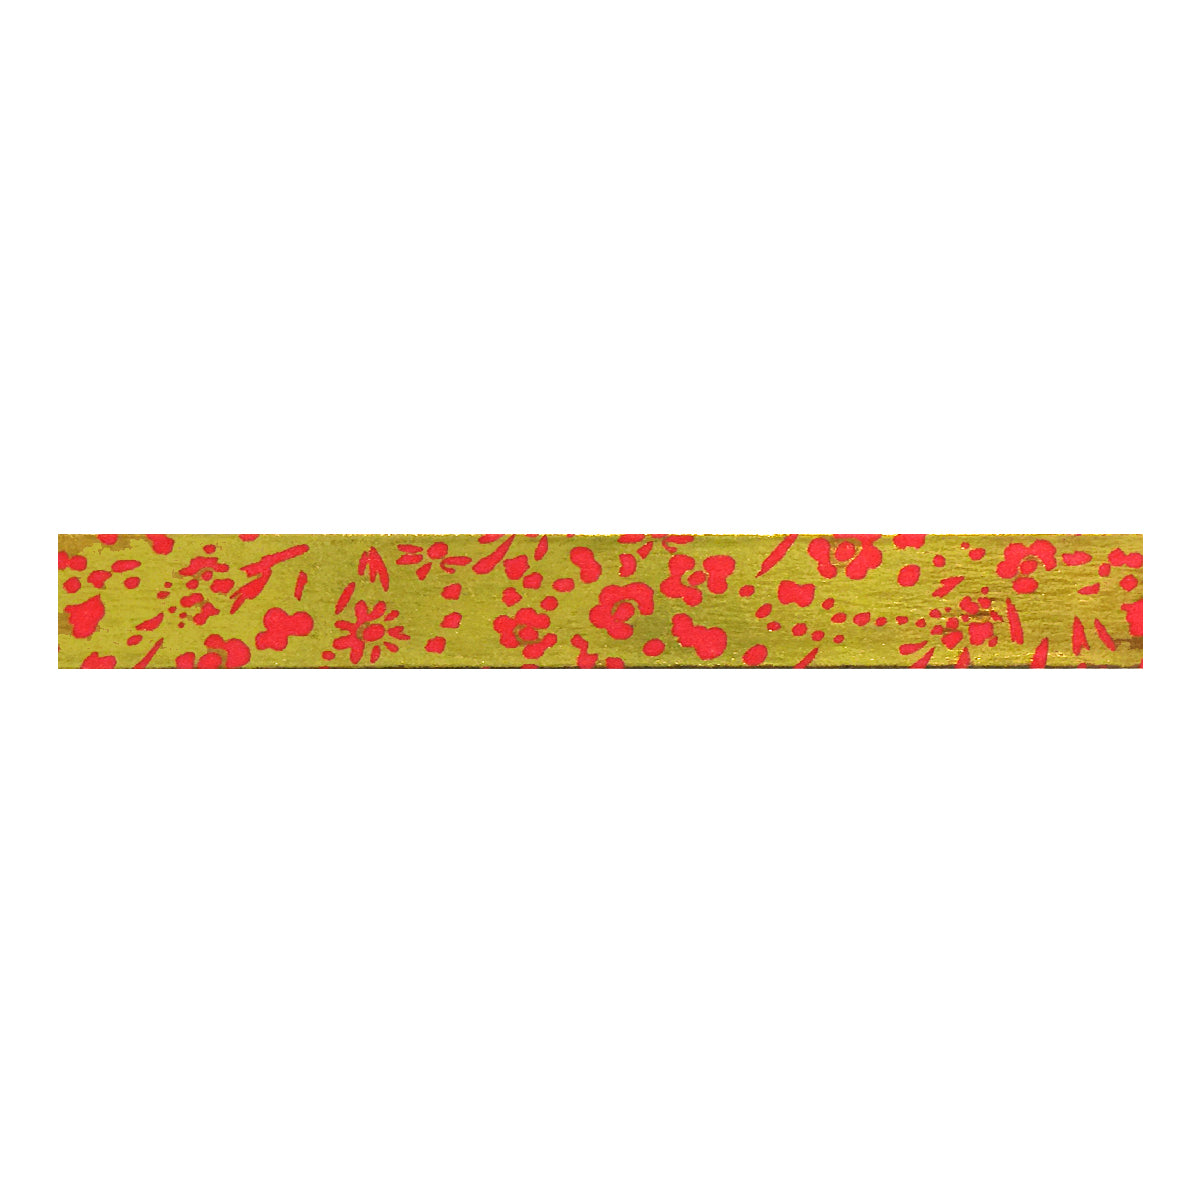 Wrapables Washi Masking Tape, Bold and Metallic Group